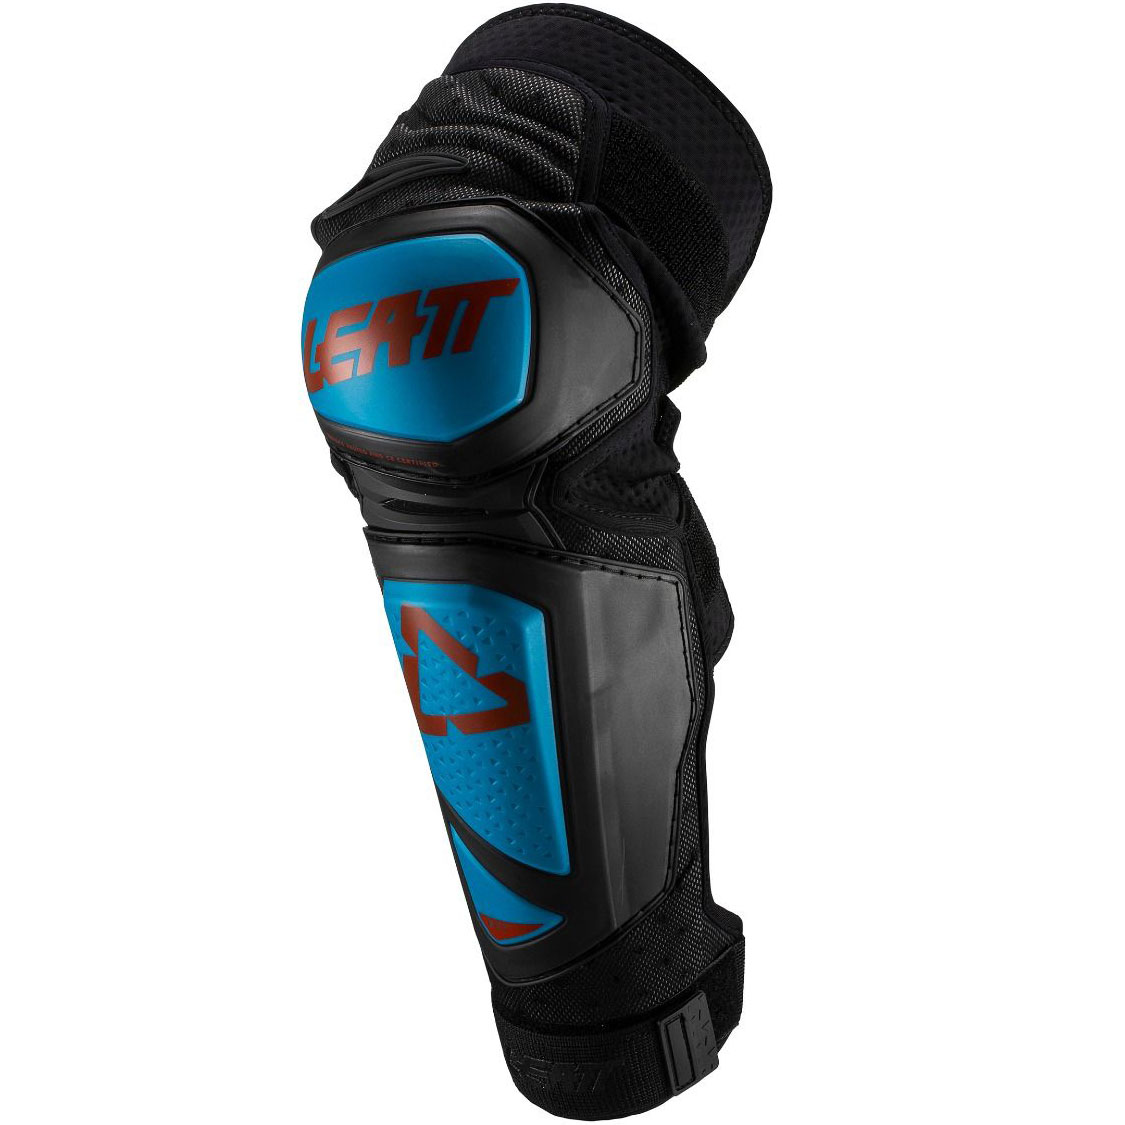 Leatt - 2019 EXT Knee & Shin Guard Fuel/Black защита колен, сине-черная